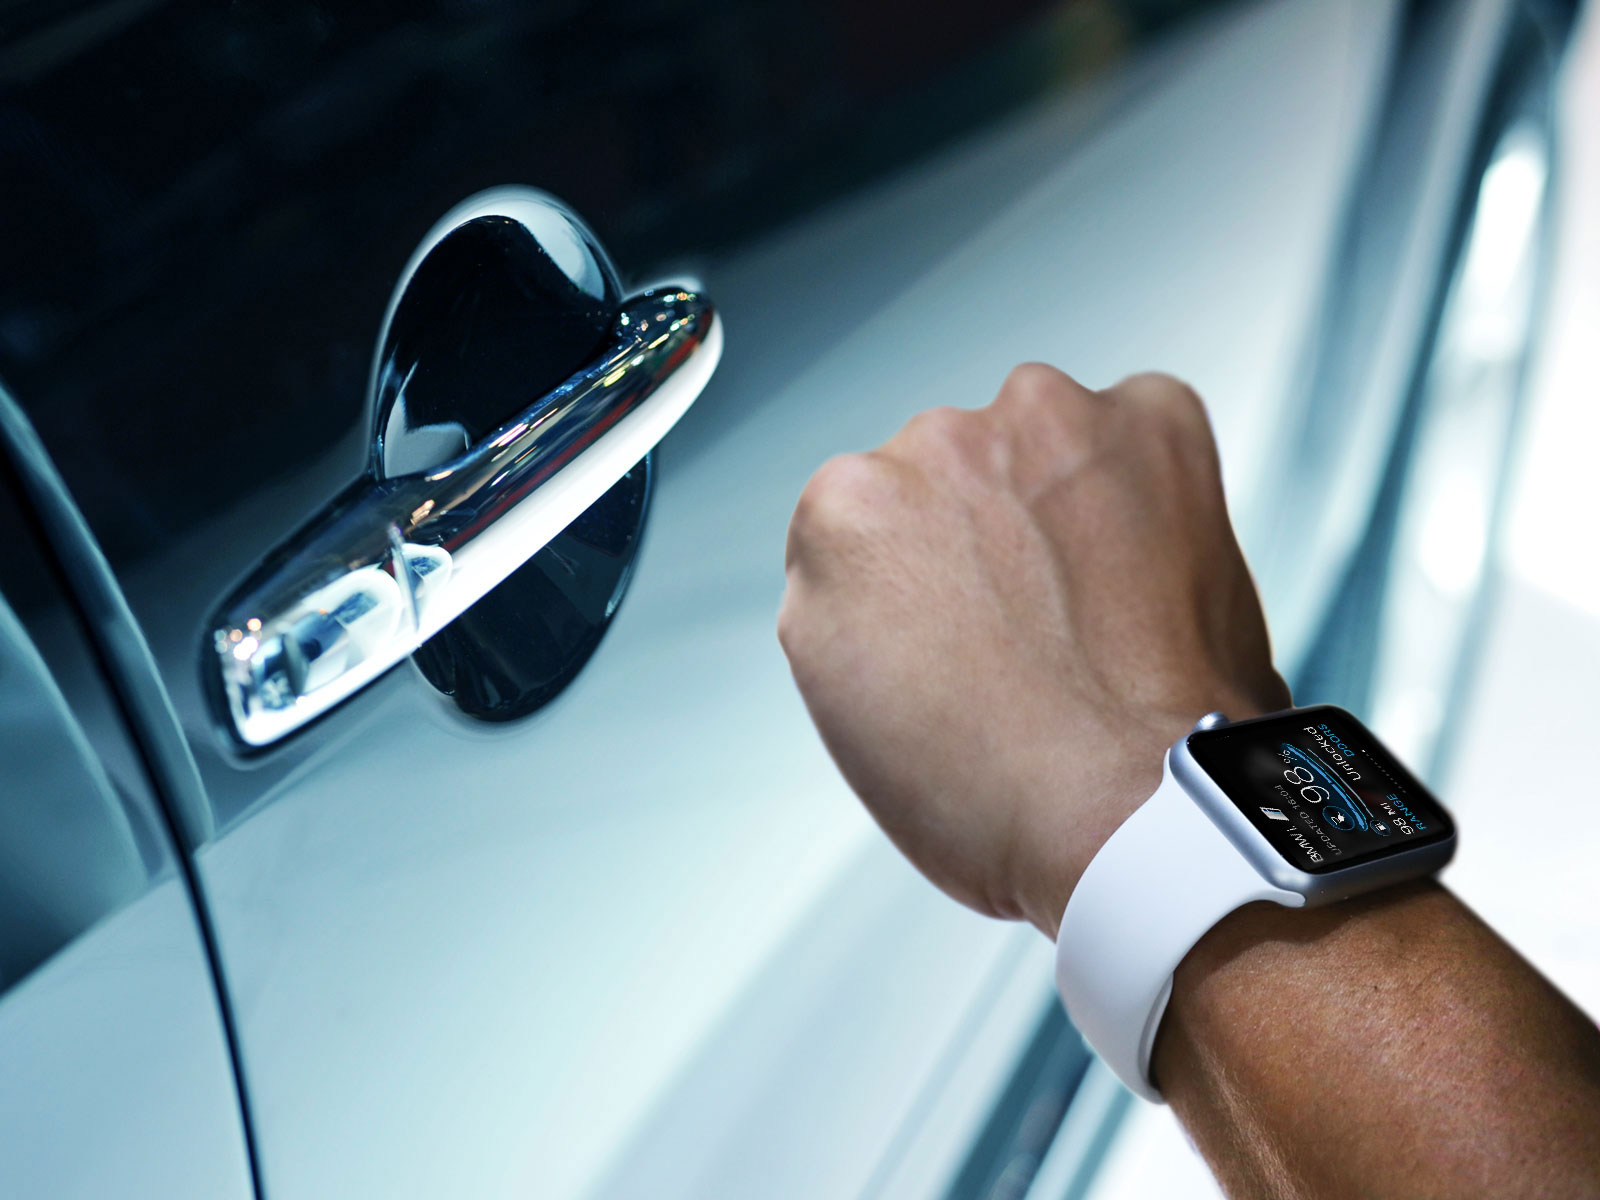 techcrunch smartphones s and bmw second unlocked smartphone unlock apple the watches act watch